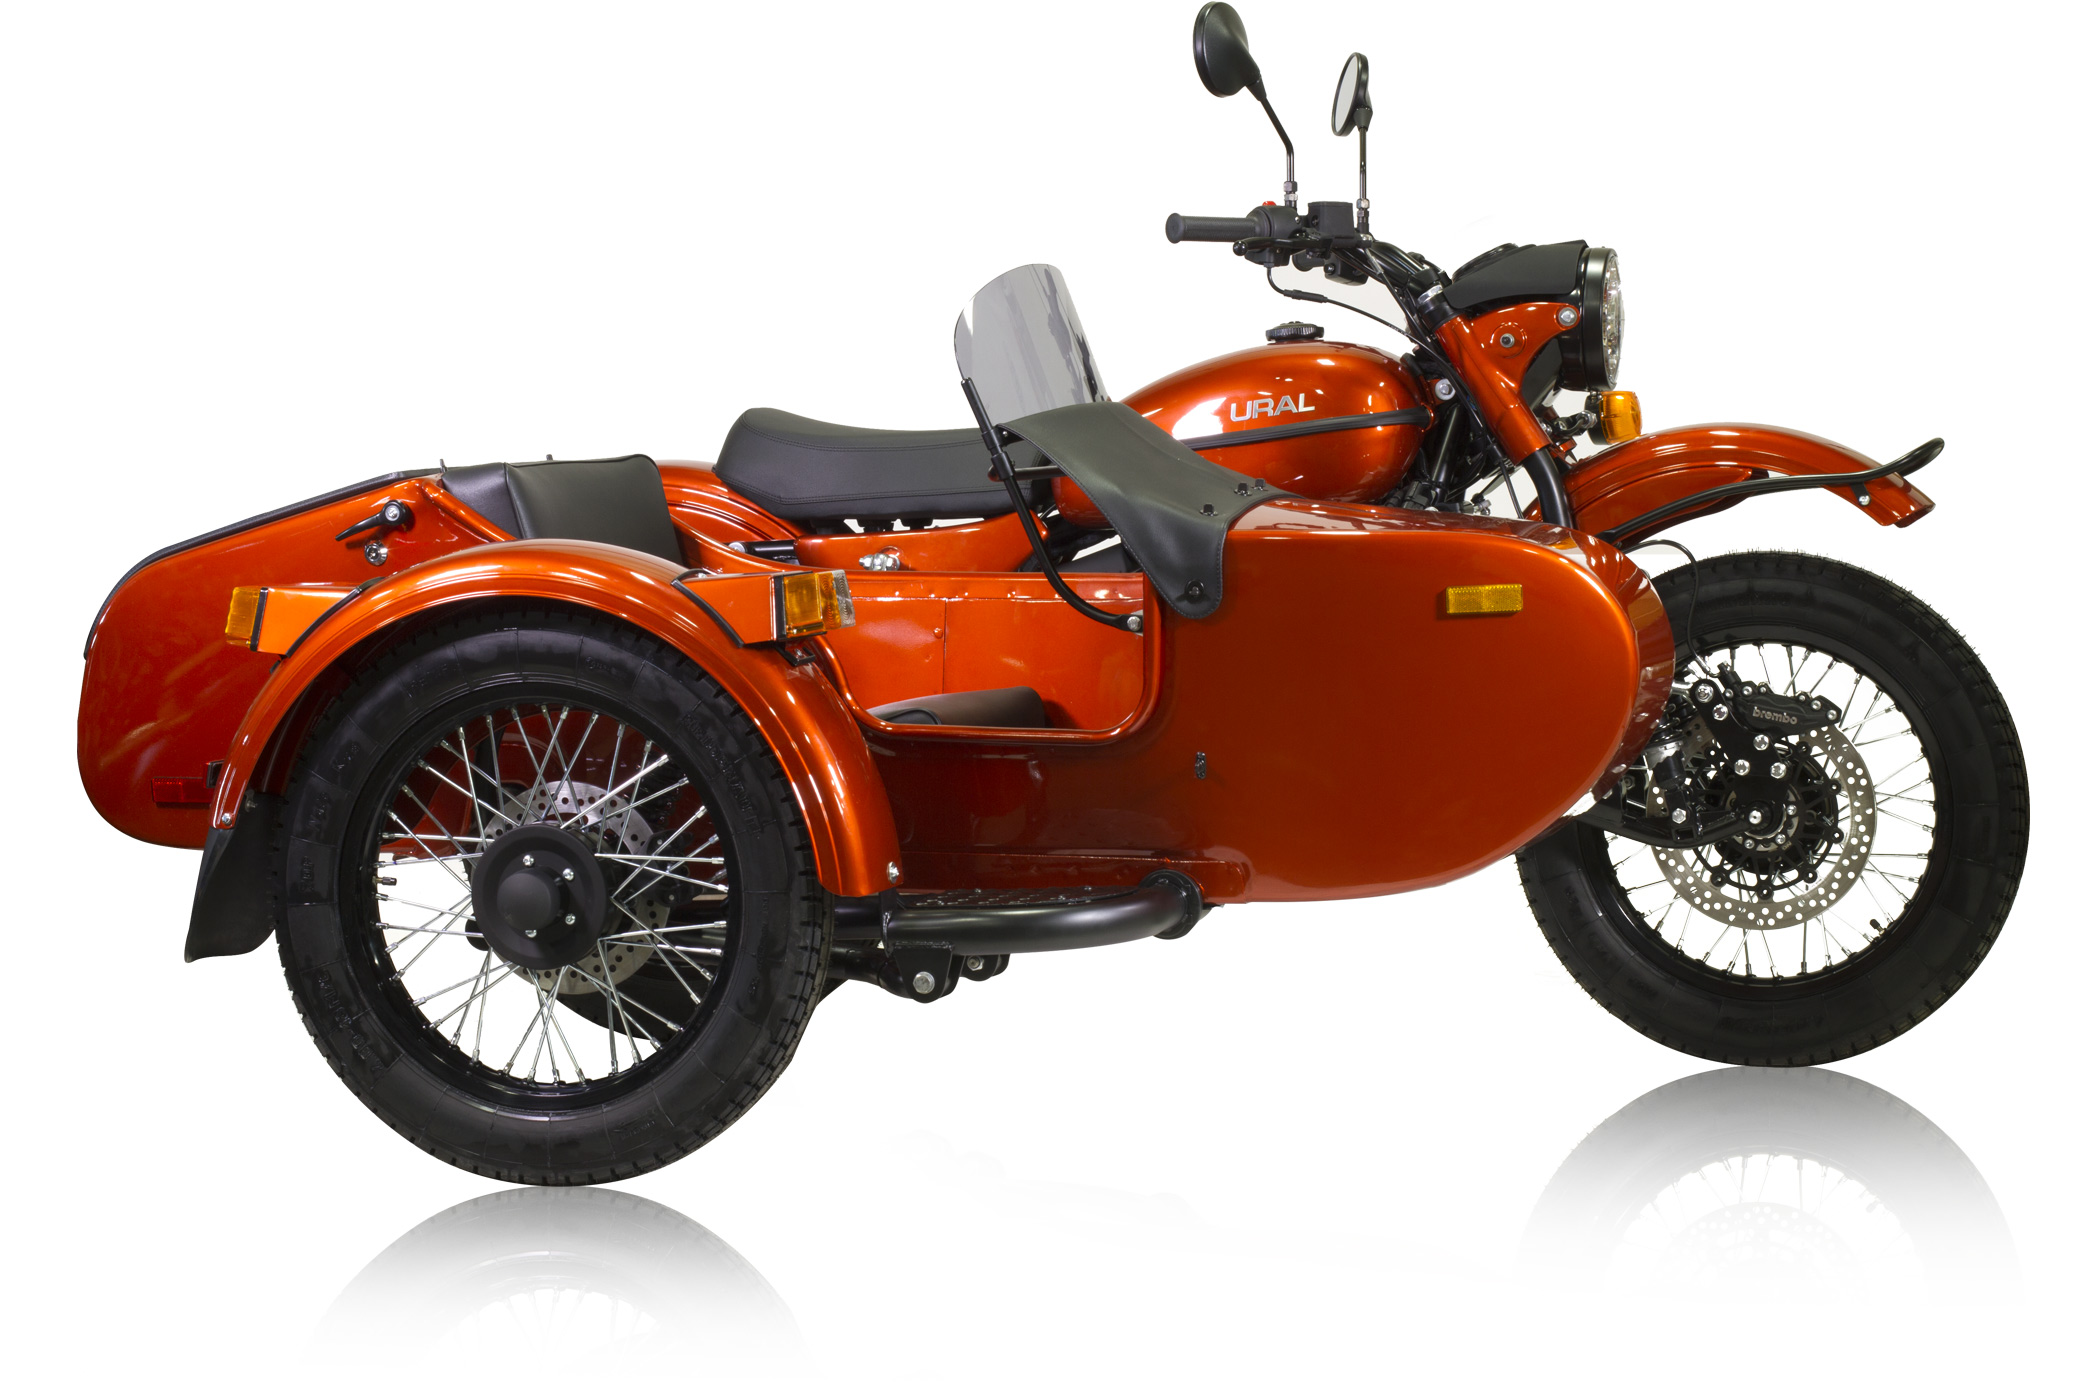 Rosso Corsa Gallery 187 Ural Motorcycles 187 Model Overview